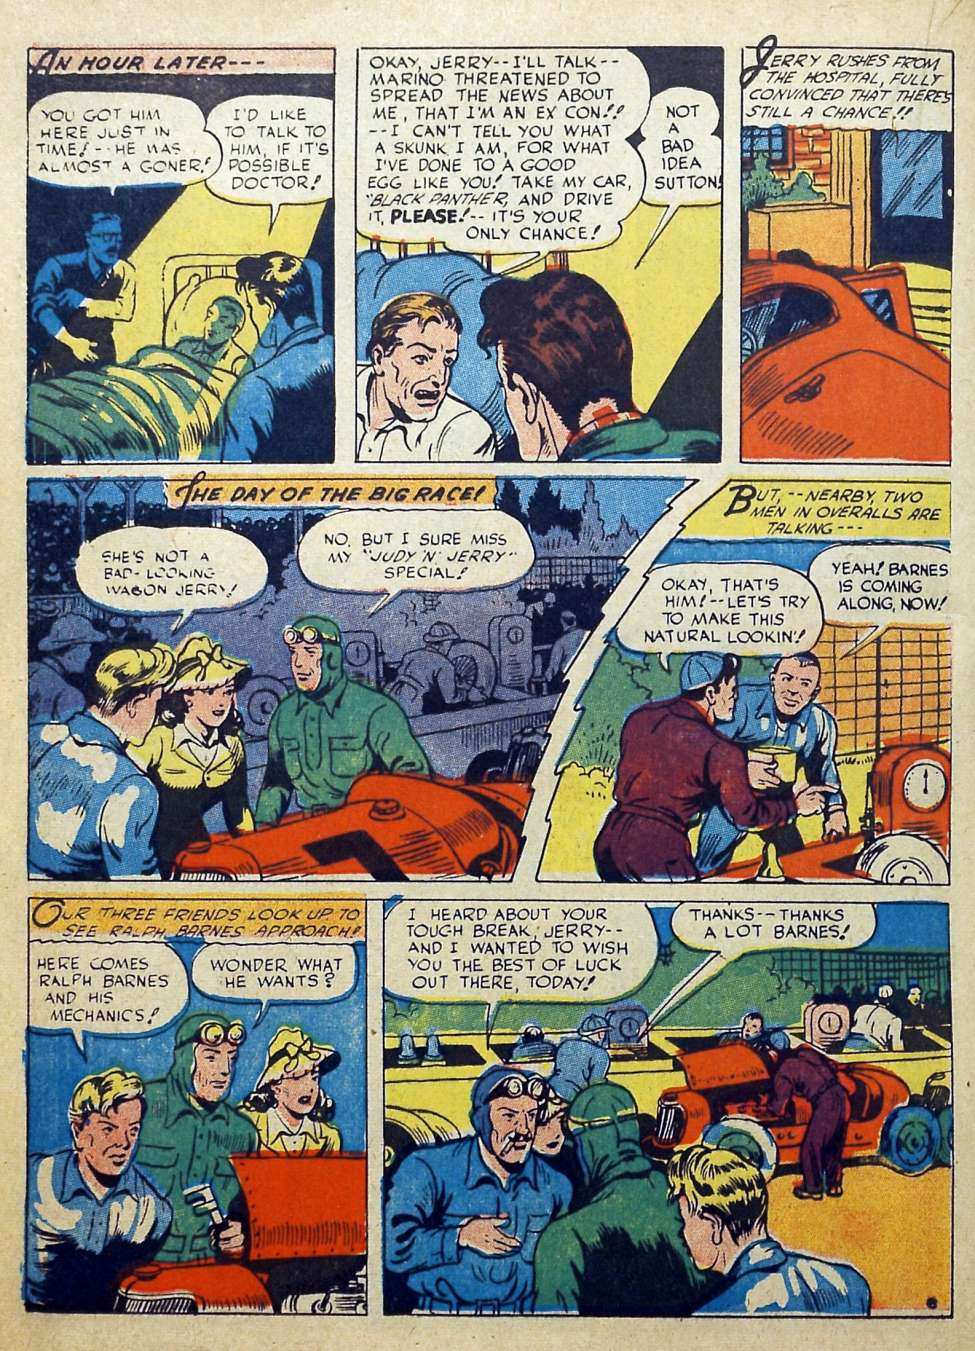 Suspense Comics #3 from 1944 36